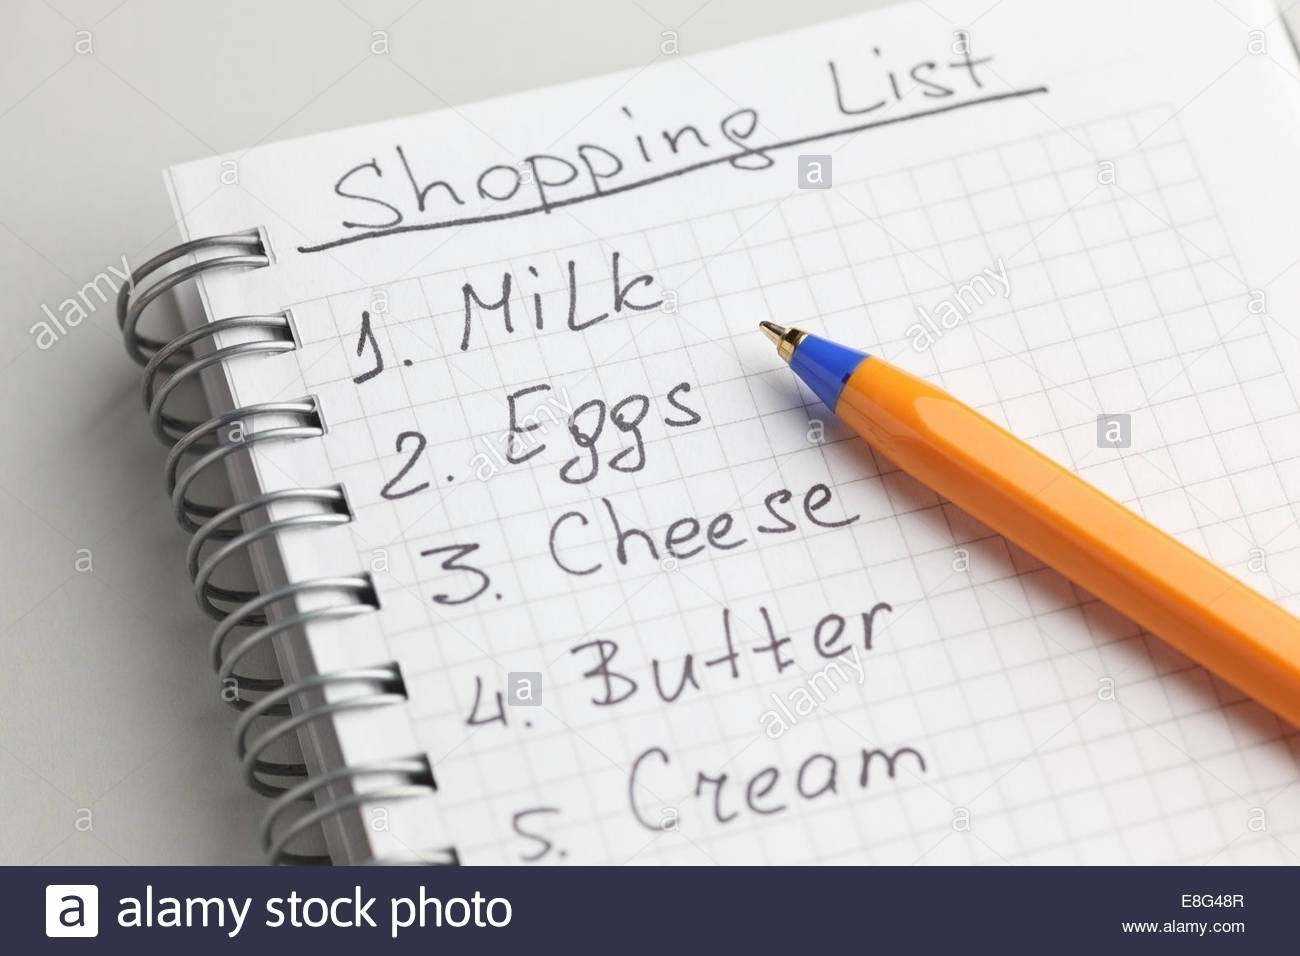 Handwritten Grocery List | World Of Example pertaining to Handwritten Shopping List 21681